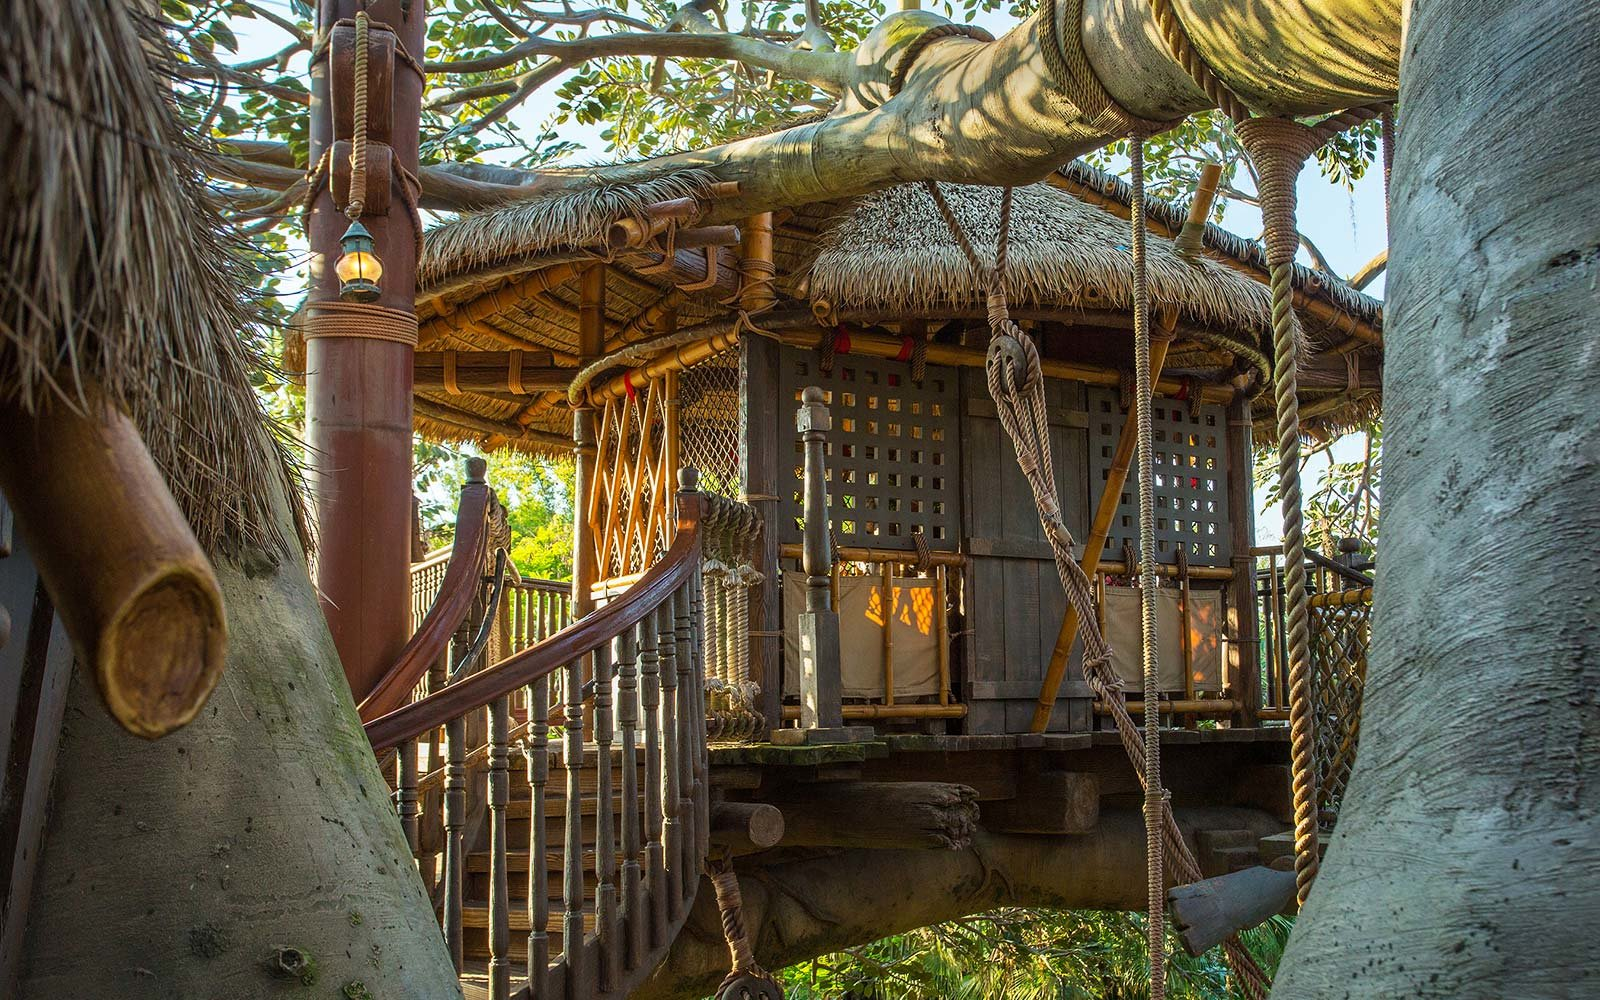 54. Swiss Family Treehouse